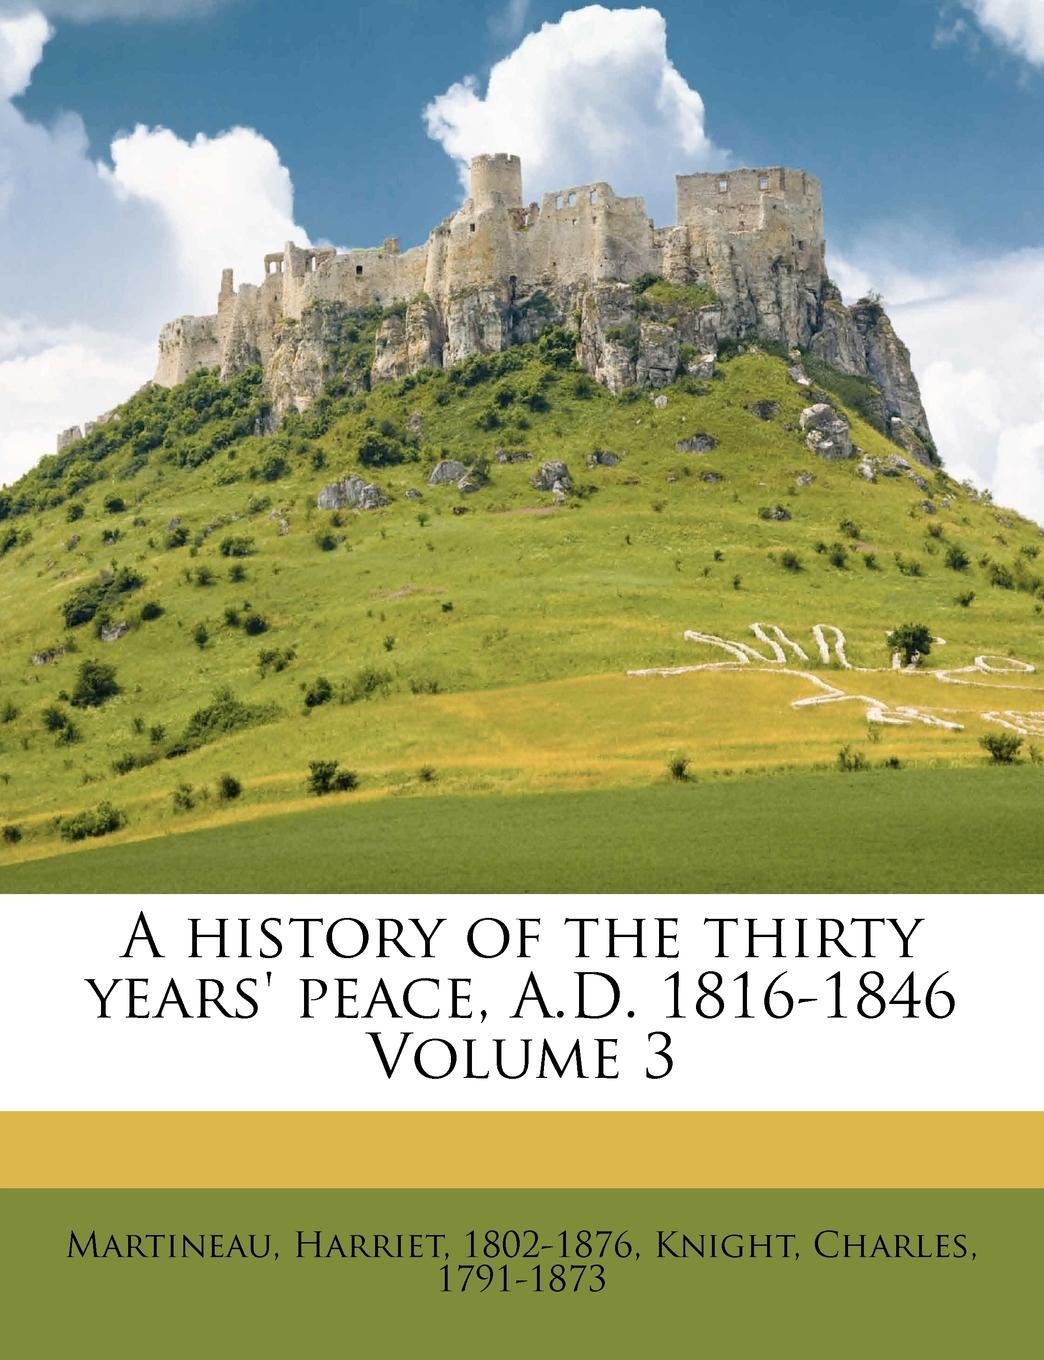 A history of the thirty years' peace, A.D. 1816-1846 Volume 3 PDF